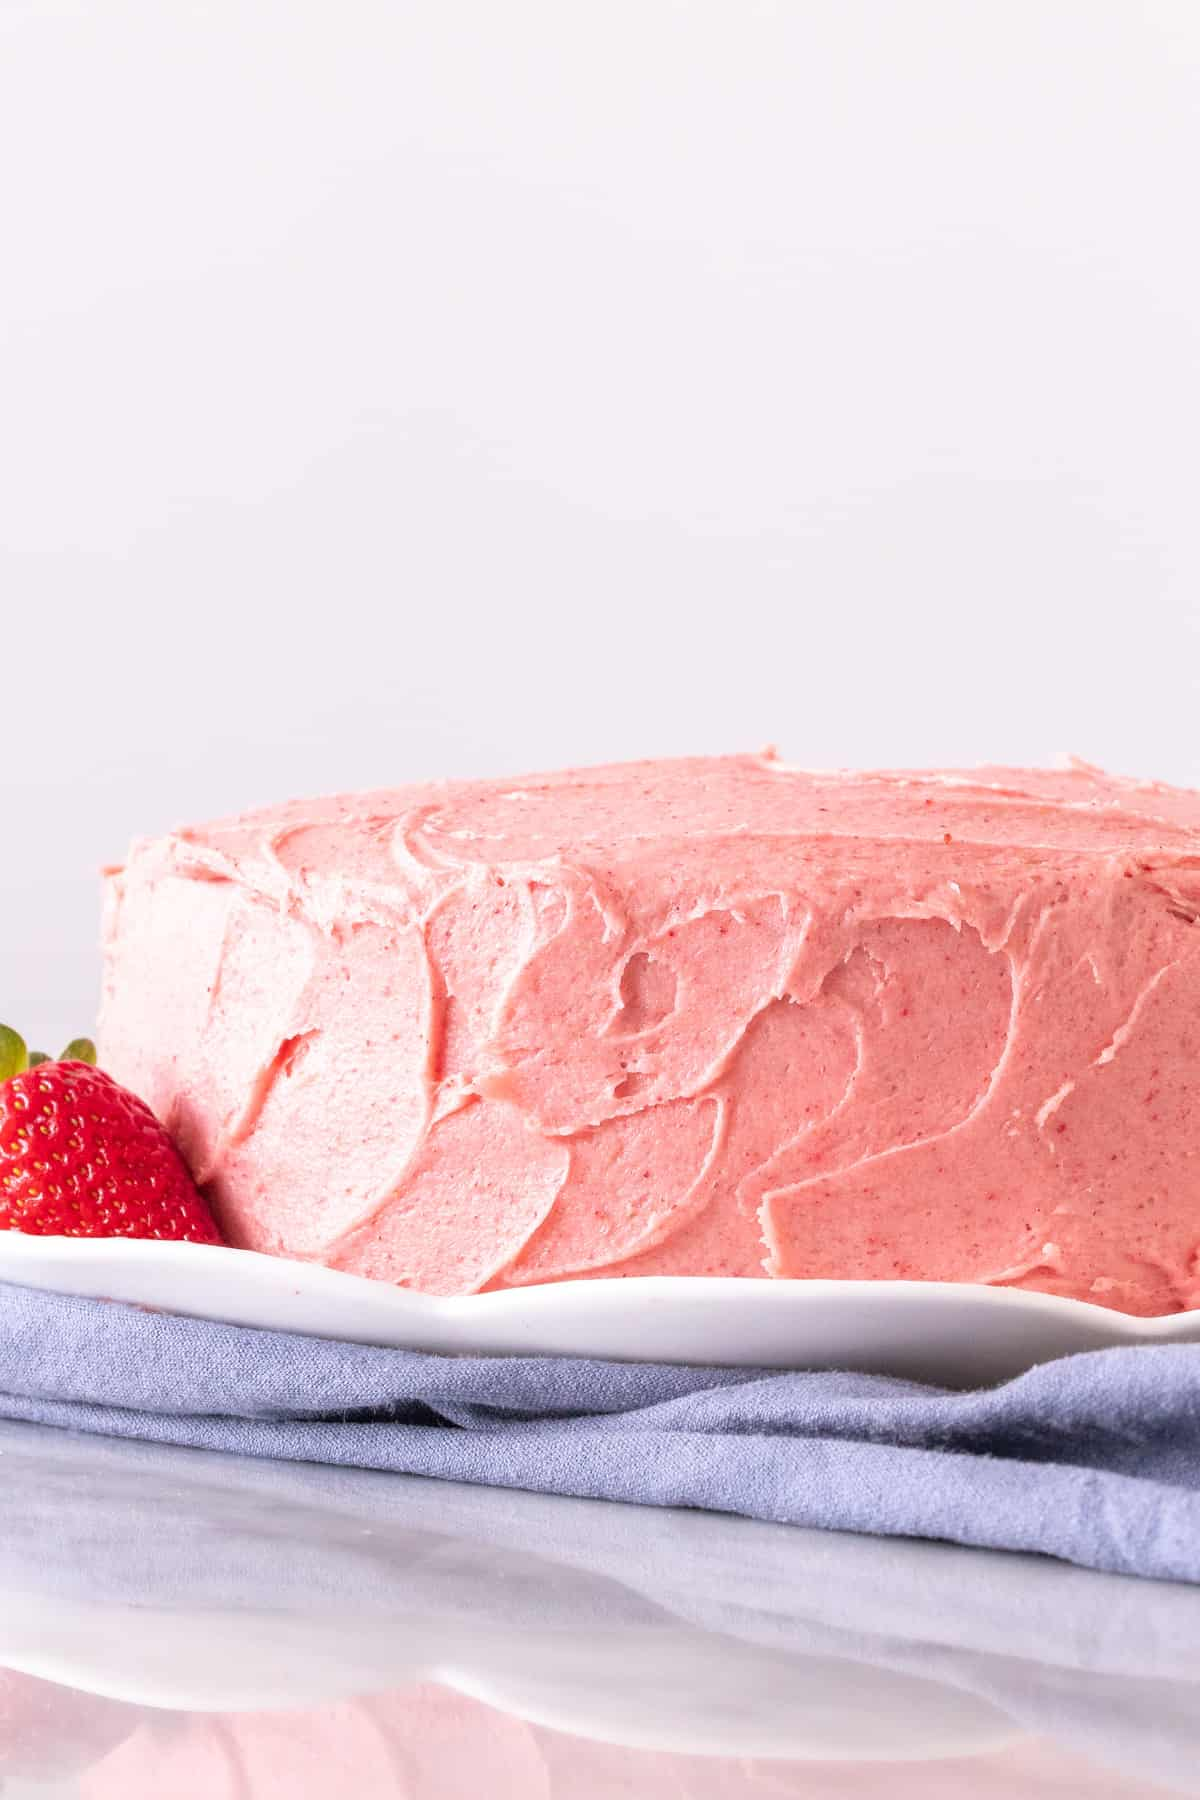 8-inch pink layer cake on a plate.